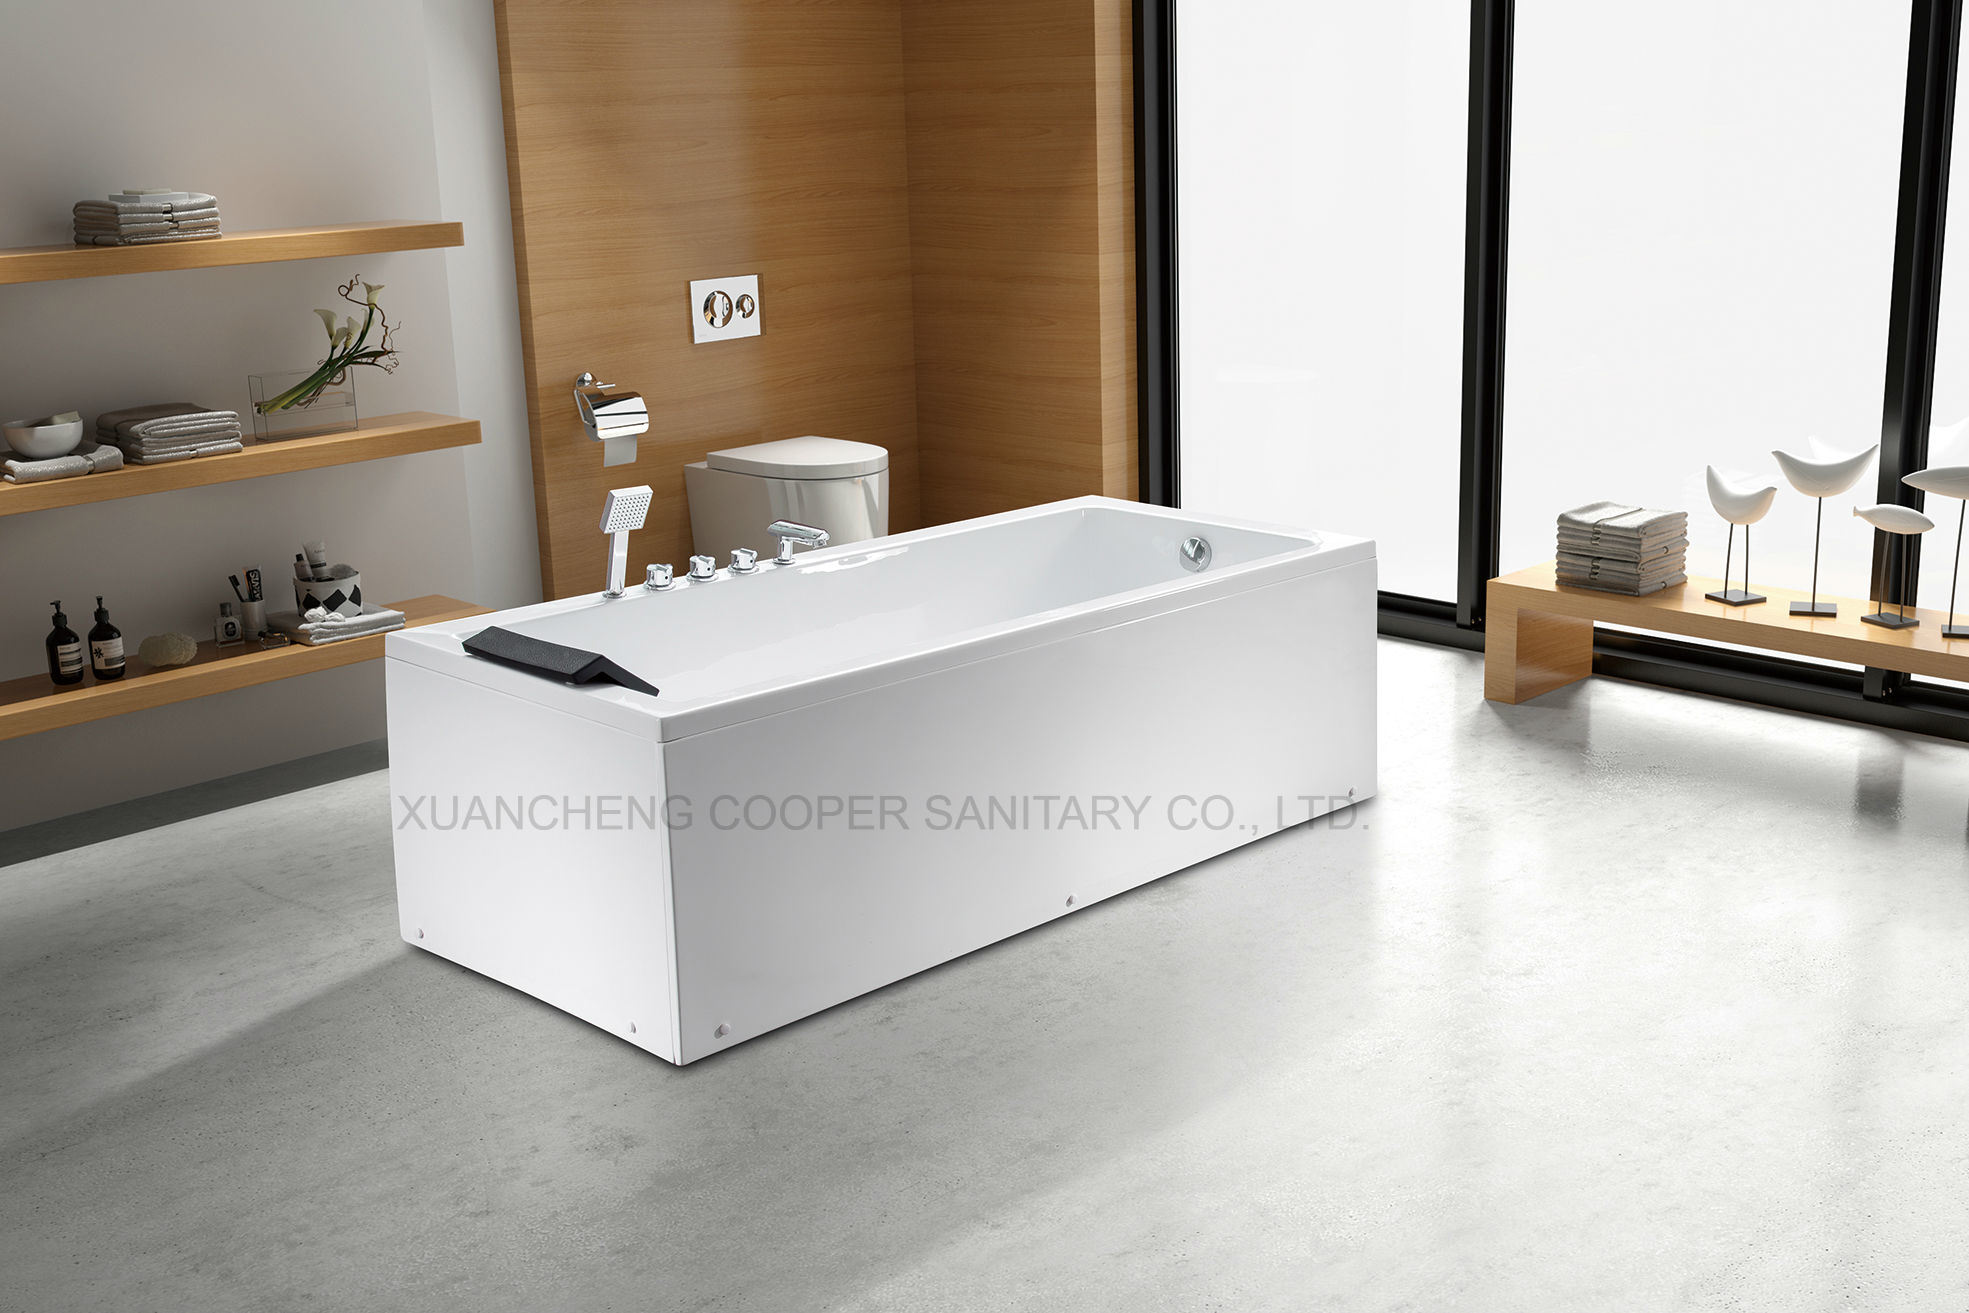 Runder Whirlpool Wholesale Bathroom Whirlpool Buy Reliable Bathroom Whirlpool